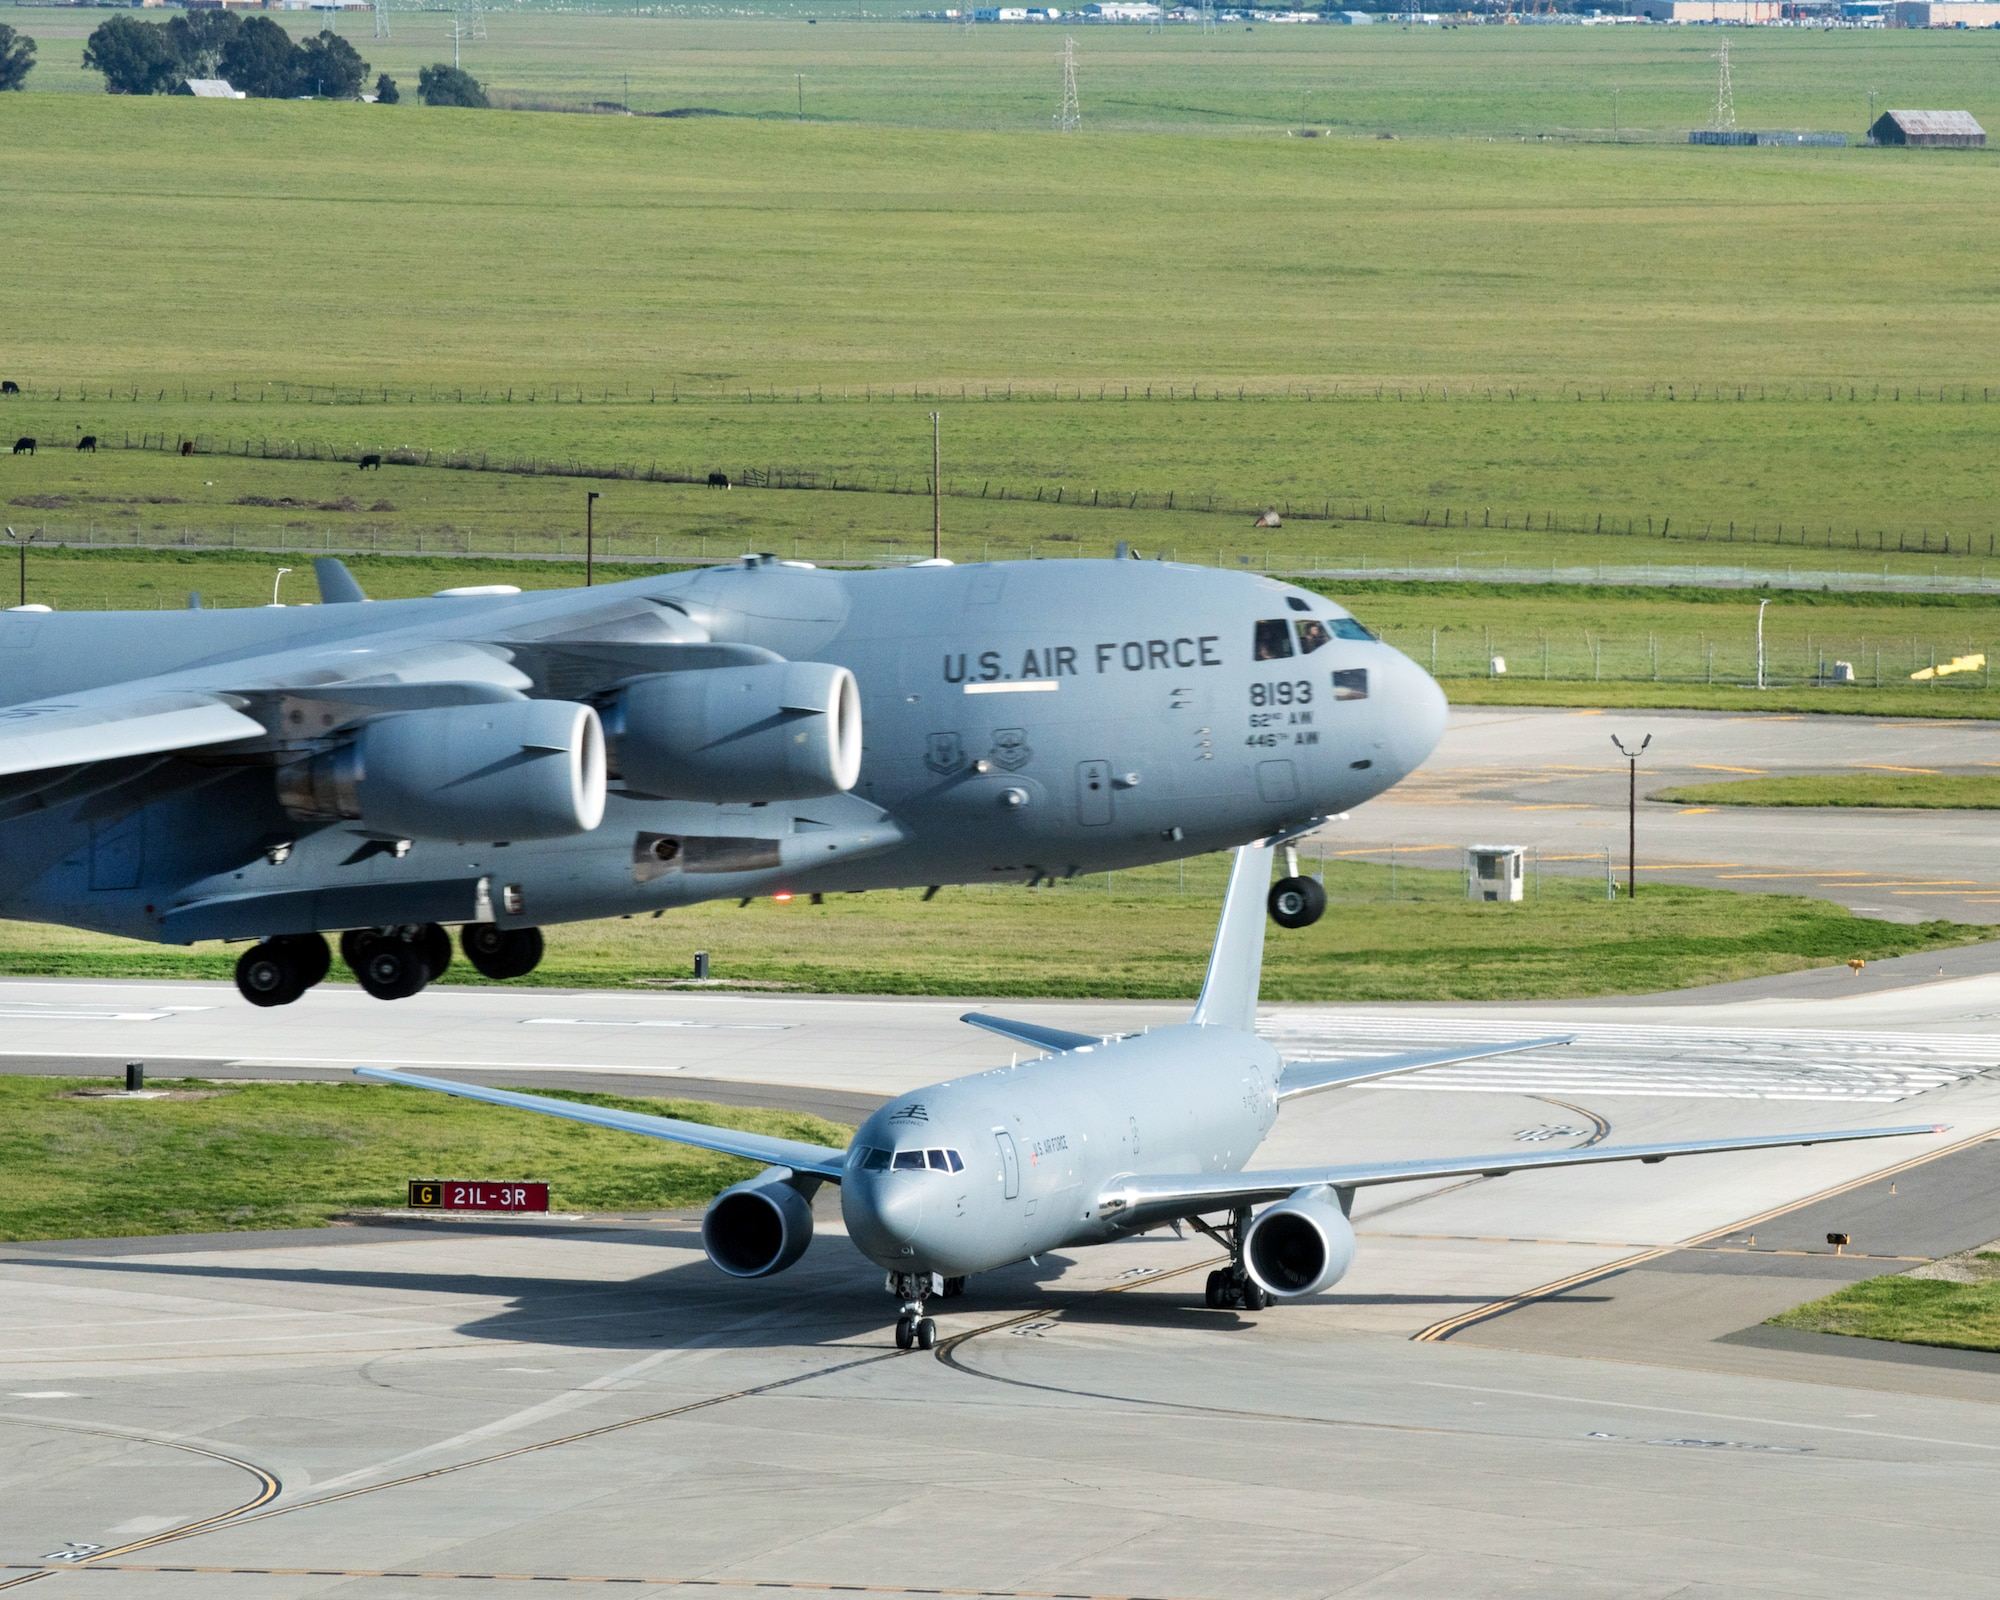 A Boeing KC-46A Pegasus arrives at Travis Air Force Base, Calif. while as C-17 Globemaster III takes off, Mar. 7, 2017. Travis was selected as a preferred location for the Air Force's newest refueling aircraft in January. This is the first time the aircraft has flown at an Air Mobility Command base and is scheduled to complete ground and flight testing during its time at Travis. (U.S. Air Force photo by Louis Briscese)